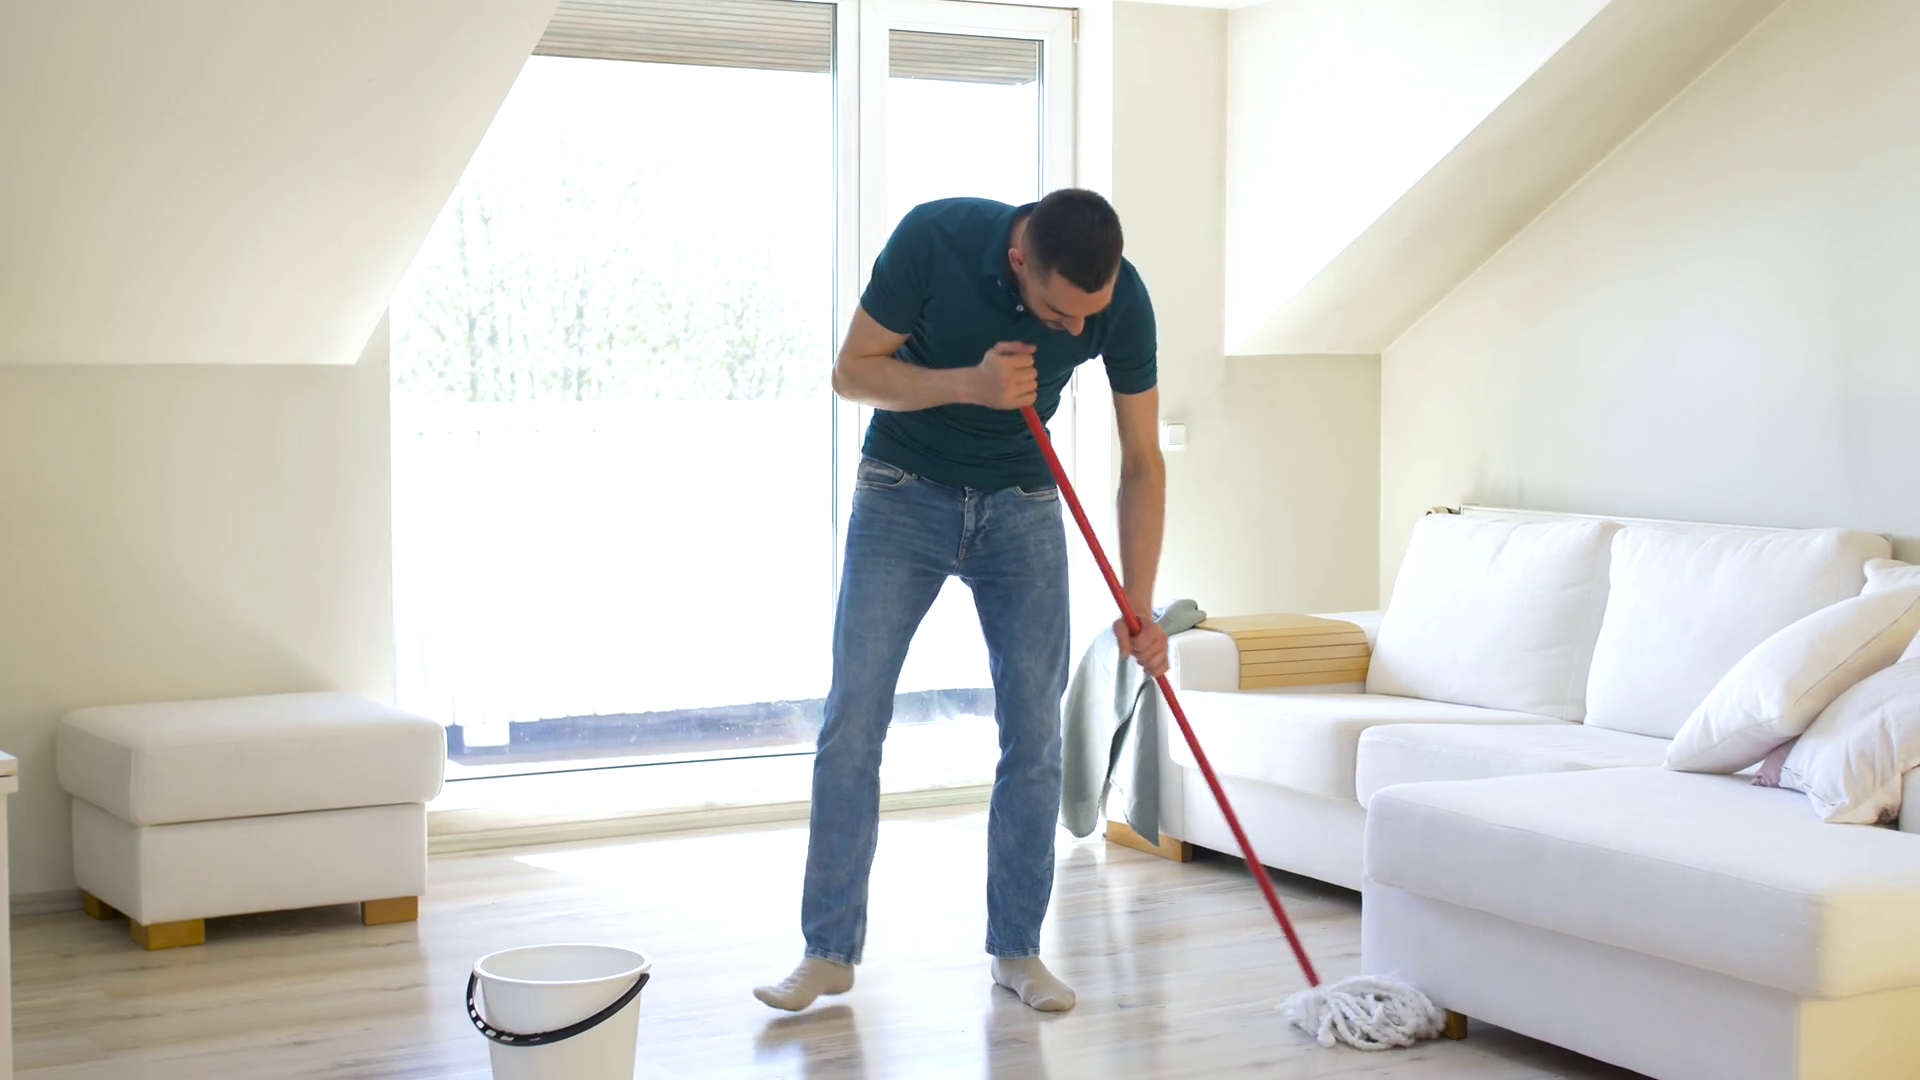 videoblocks people housework and housekeeping concept happy man with mop cleaning floor and dancing at home bygi5zccf thumbnail full01